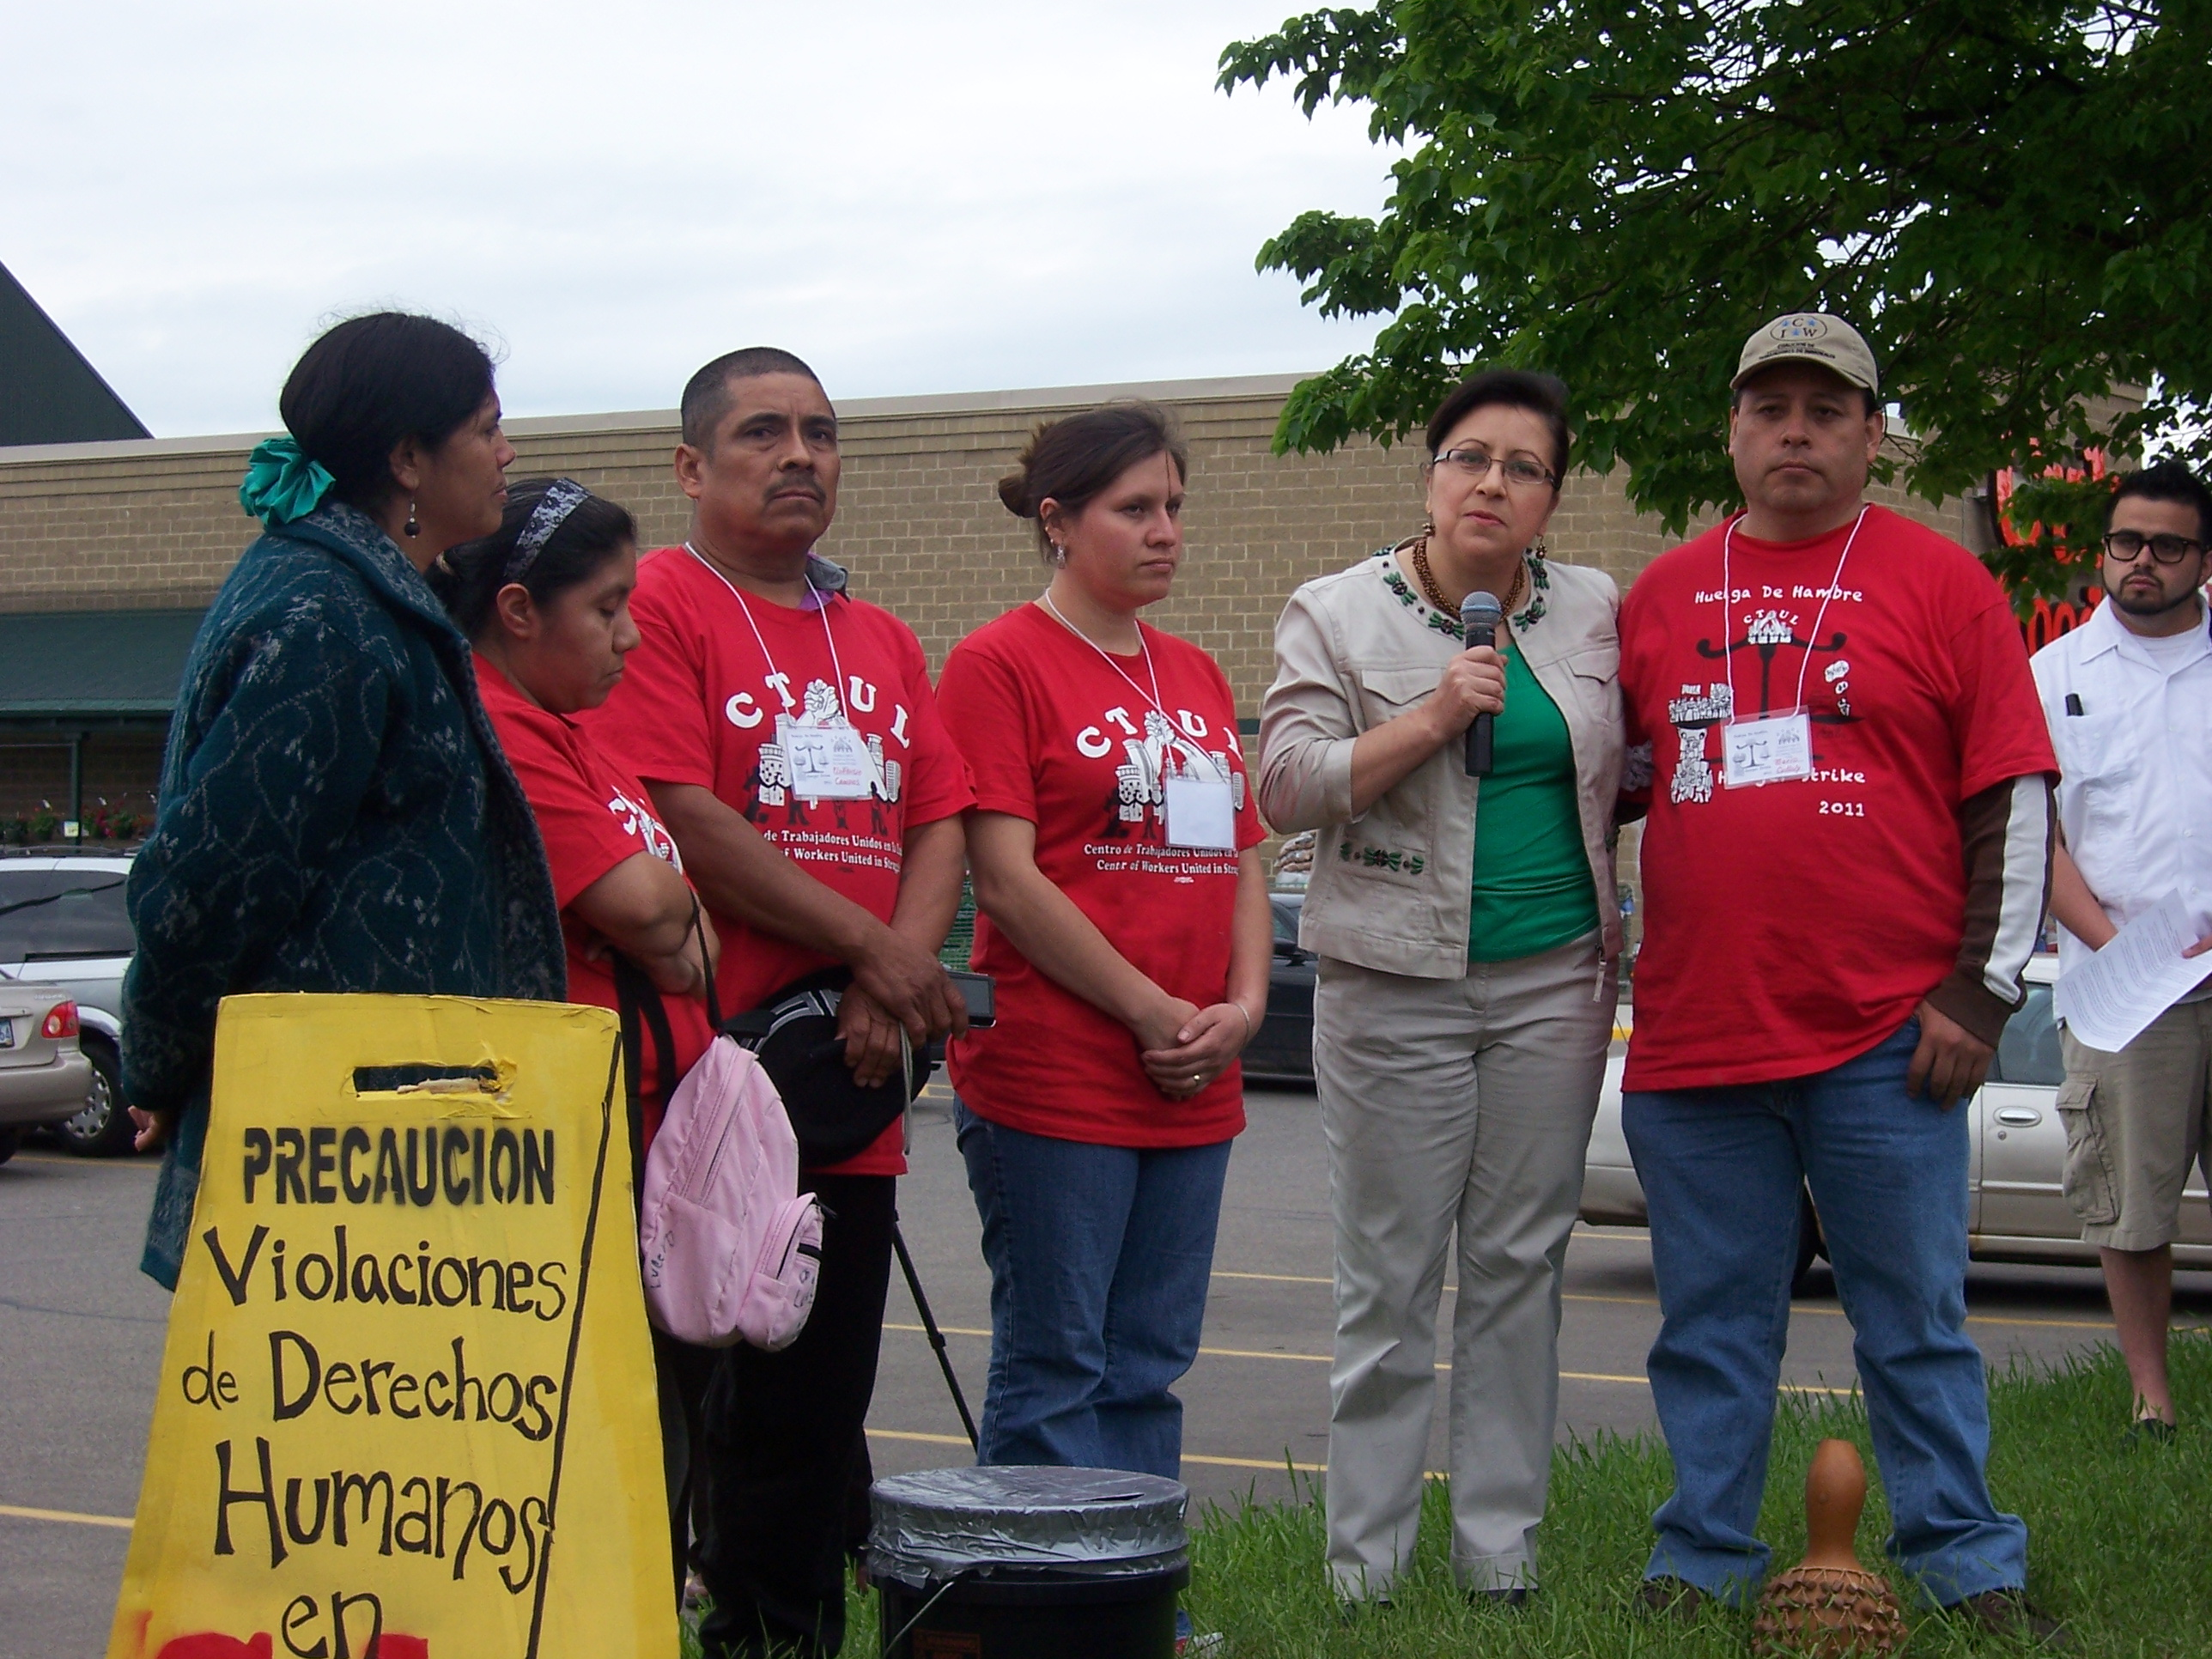 Minnesota Sen. Patricia Torres Ray stands with retail cleaning workers including Mario Colloly Torres, far right, and addresses the crowd of supporters at CTUL's May hunger strike outside the Lake Street Cub Foods. (Photo by Chelsey Perkins)